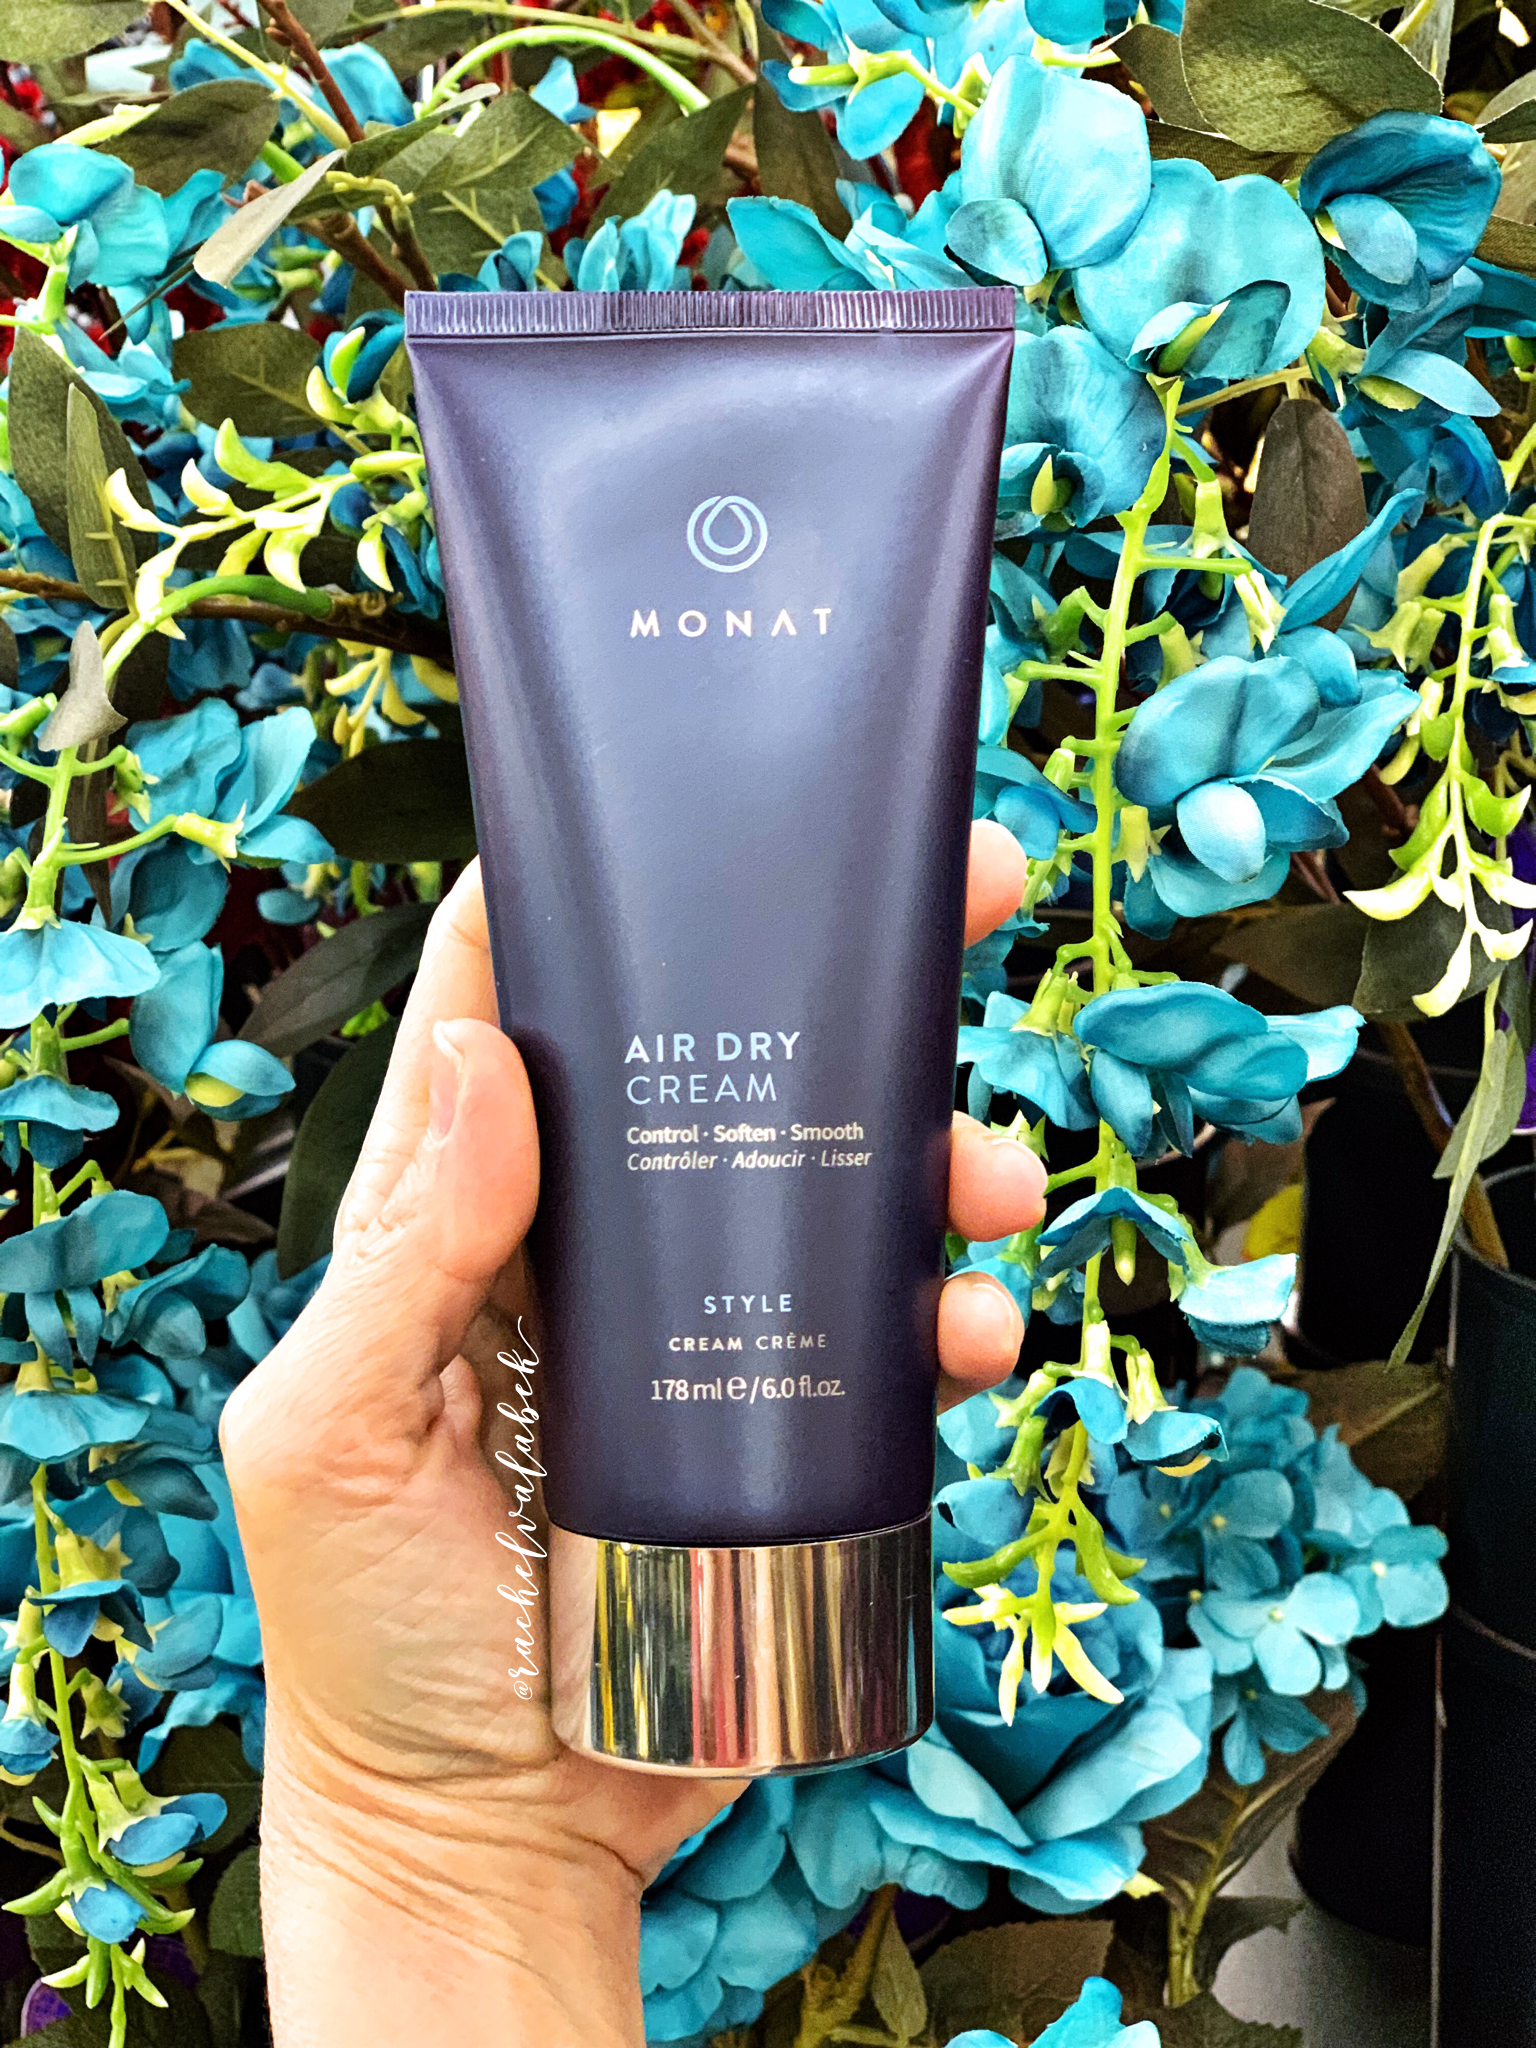 Monat's Air Dry Cream helps dry your hair naturally